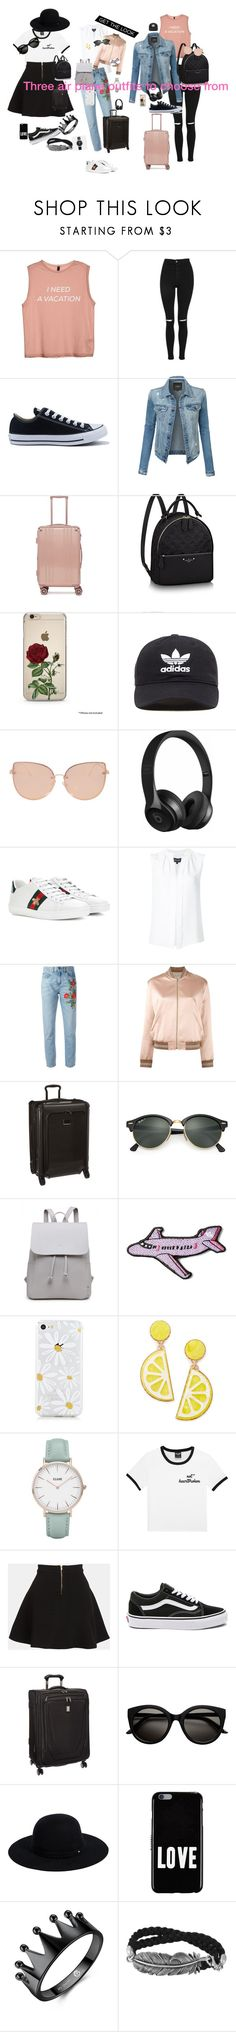 """Air plane"" by maeve-lamson on Polyvore featuring Topshop, Converse, LE3NO, CalPak, adidas Originals, Beats by Dr. Dre, Gucci, Derek Lam, Yves Saint Laurent and Tumi"